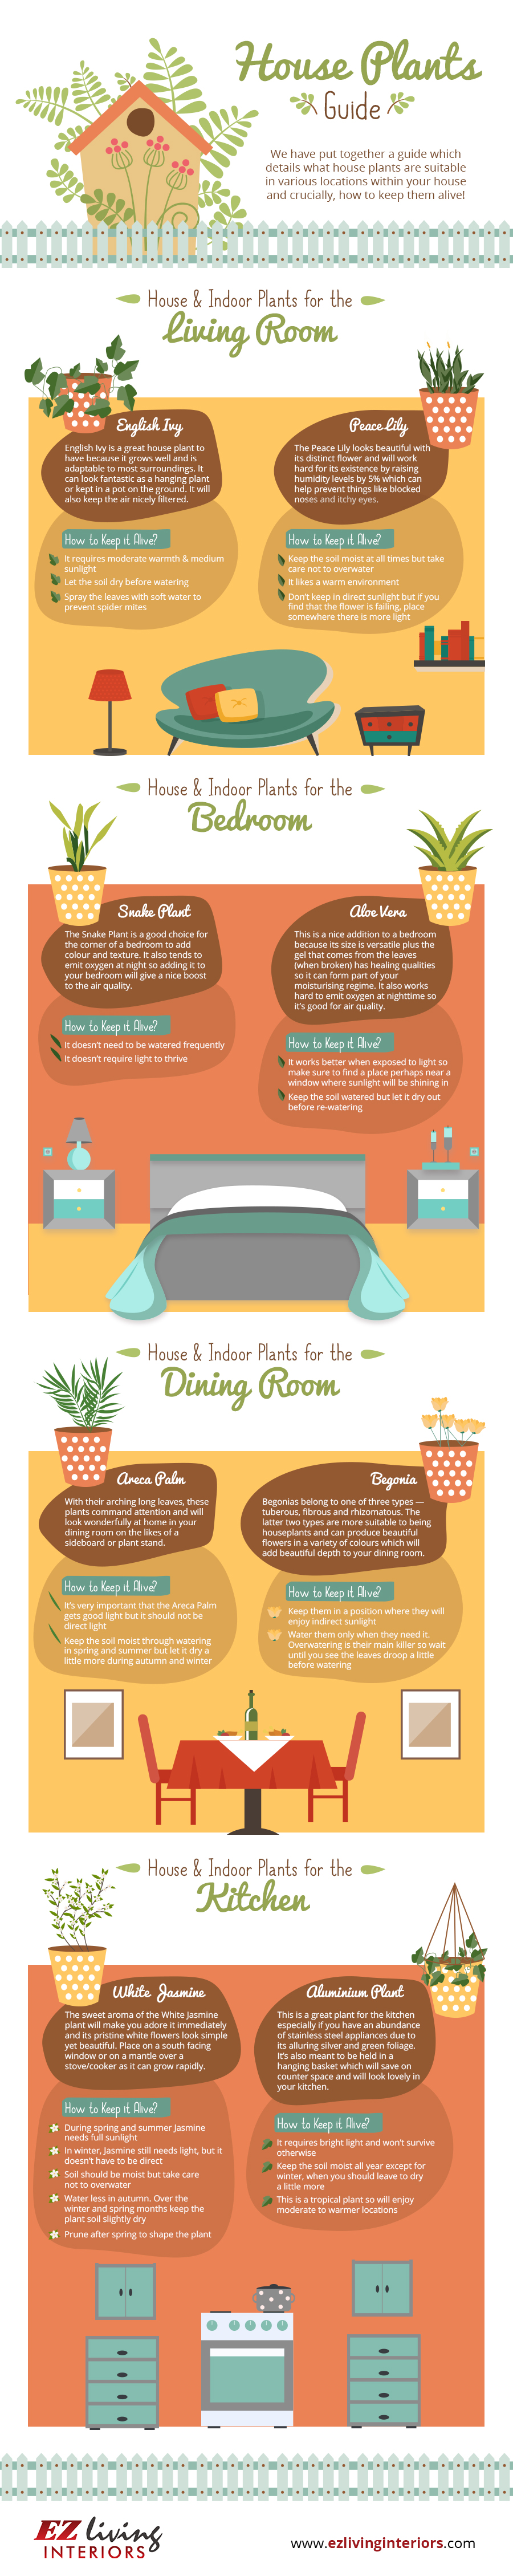 A Guide to House Plants